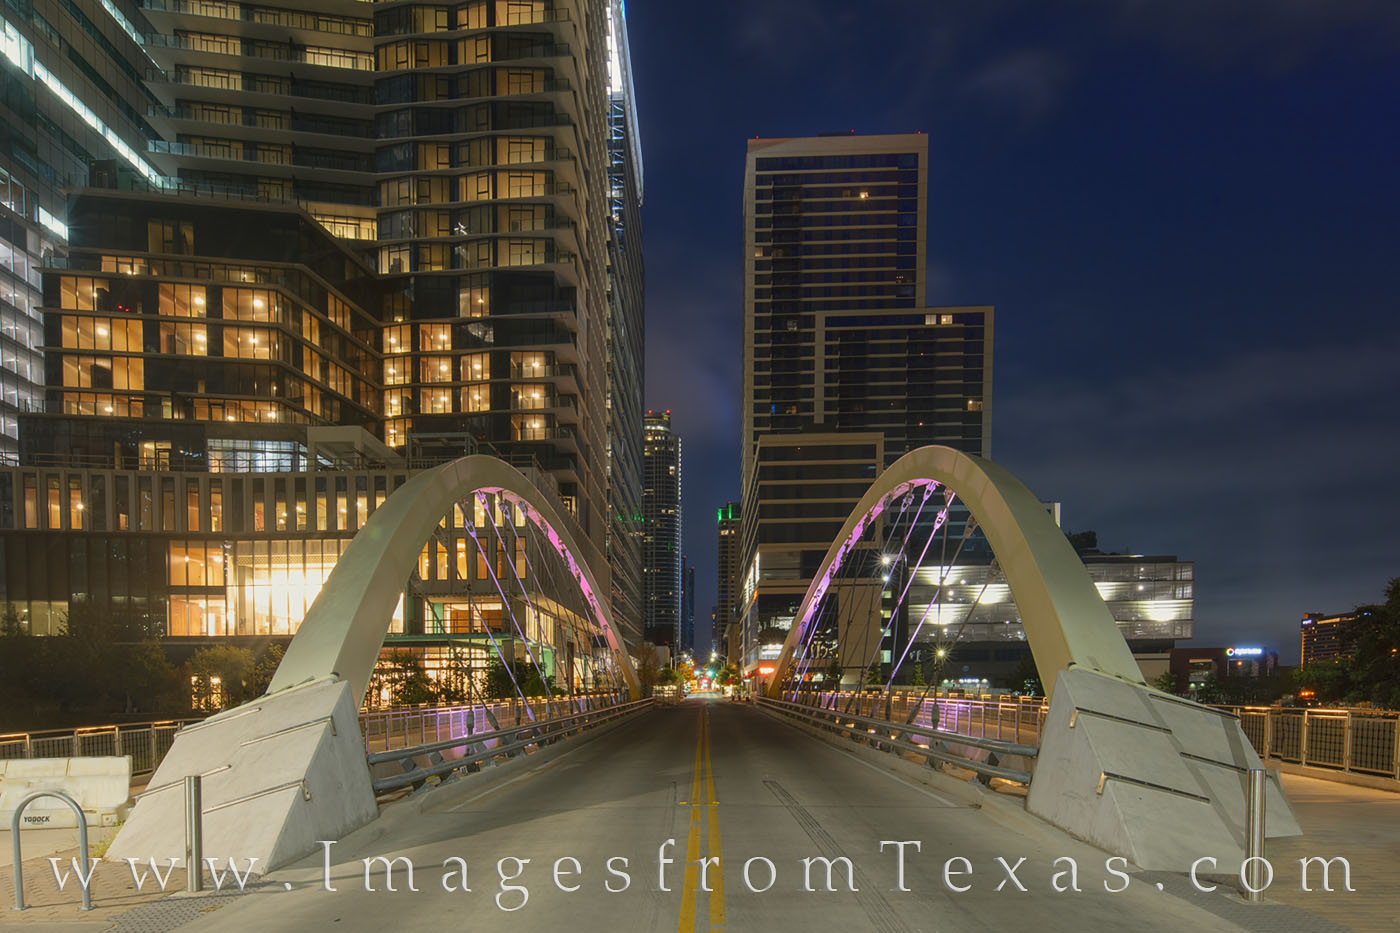 Well before sunrise in downtown Austin, the Butterfly Bridge crosses Shoal Creek and shows off the colorful lights used to illuminate...